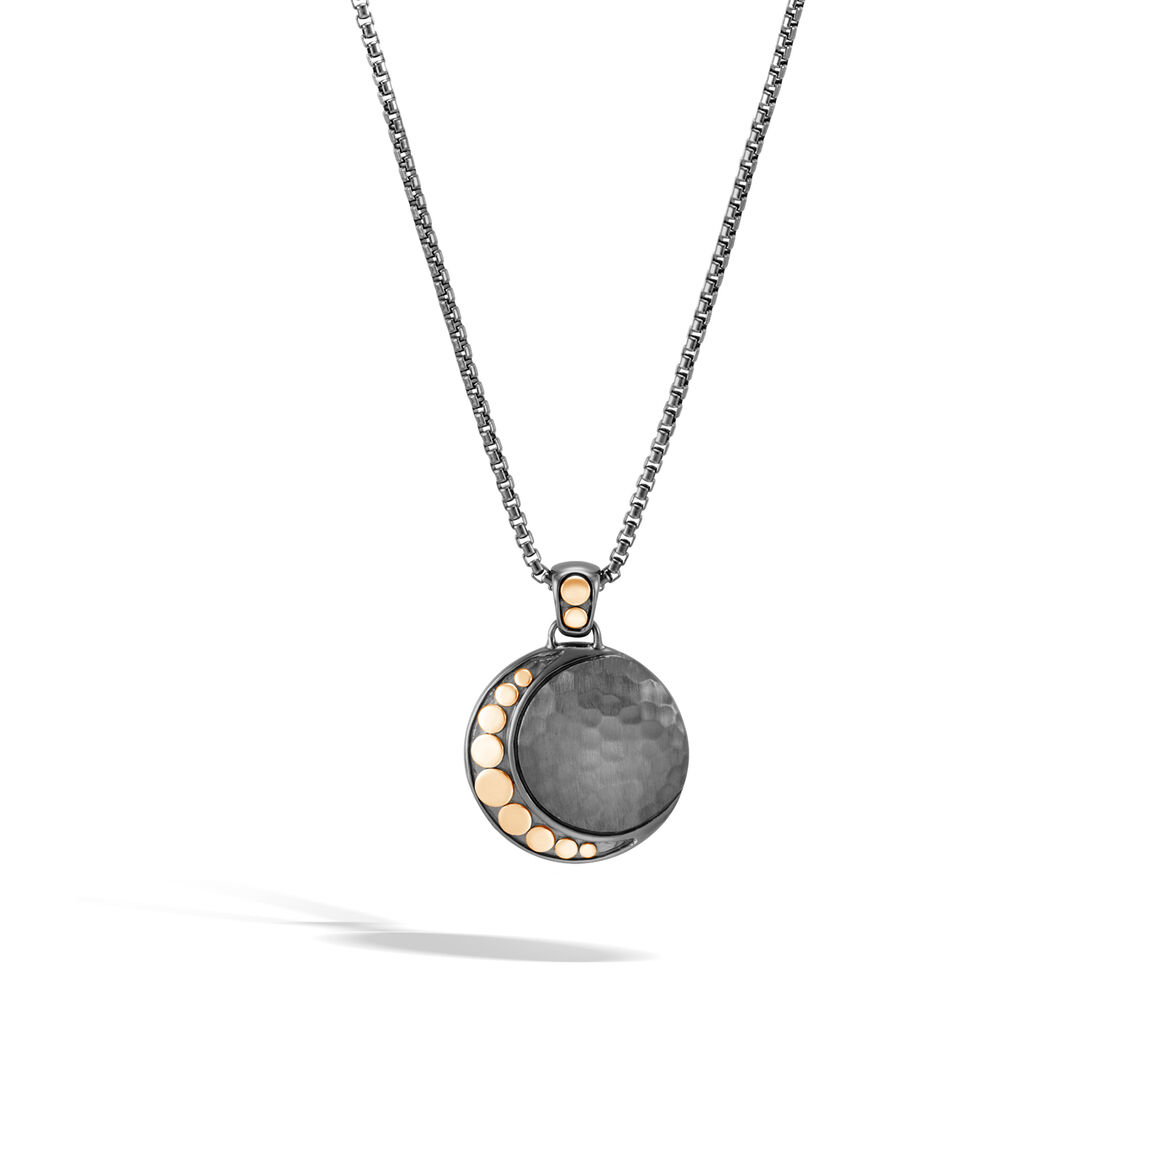 Dot Moon Phase Pendant Necklace, Black Hammered Silver, 18K